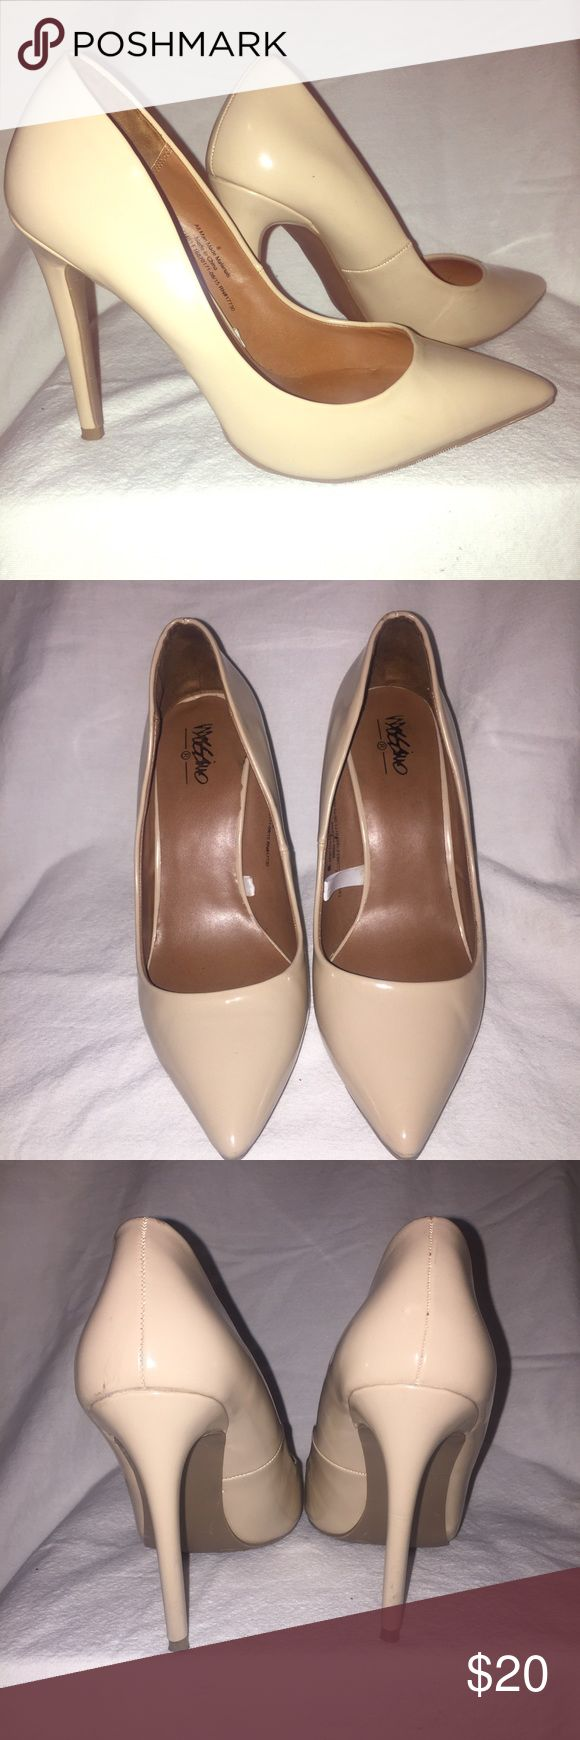 "Mossimo Classic Nude Pump Size 8 Preowned and in great condition. Worn only twice. Patent leather look. 4"" heel. Women's size 8. Mossimo Supply Co Shoes Heels"